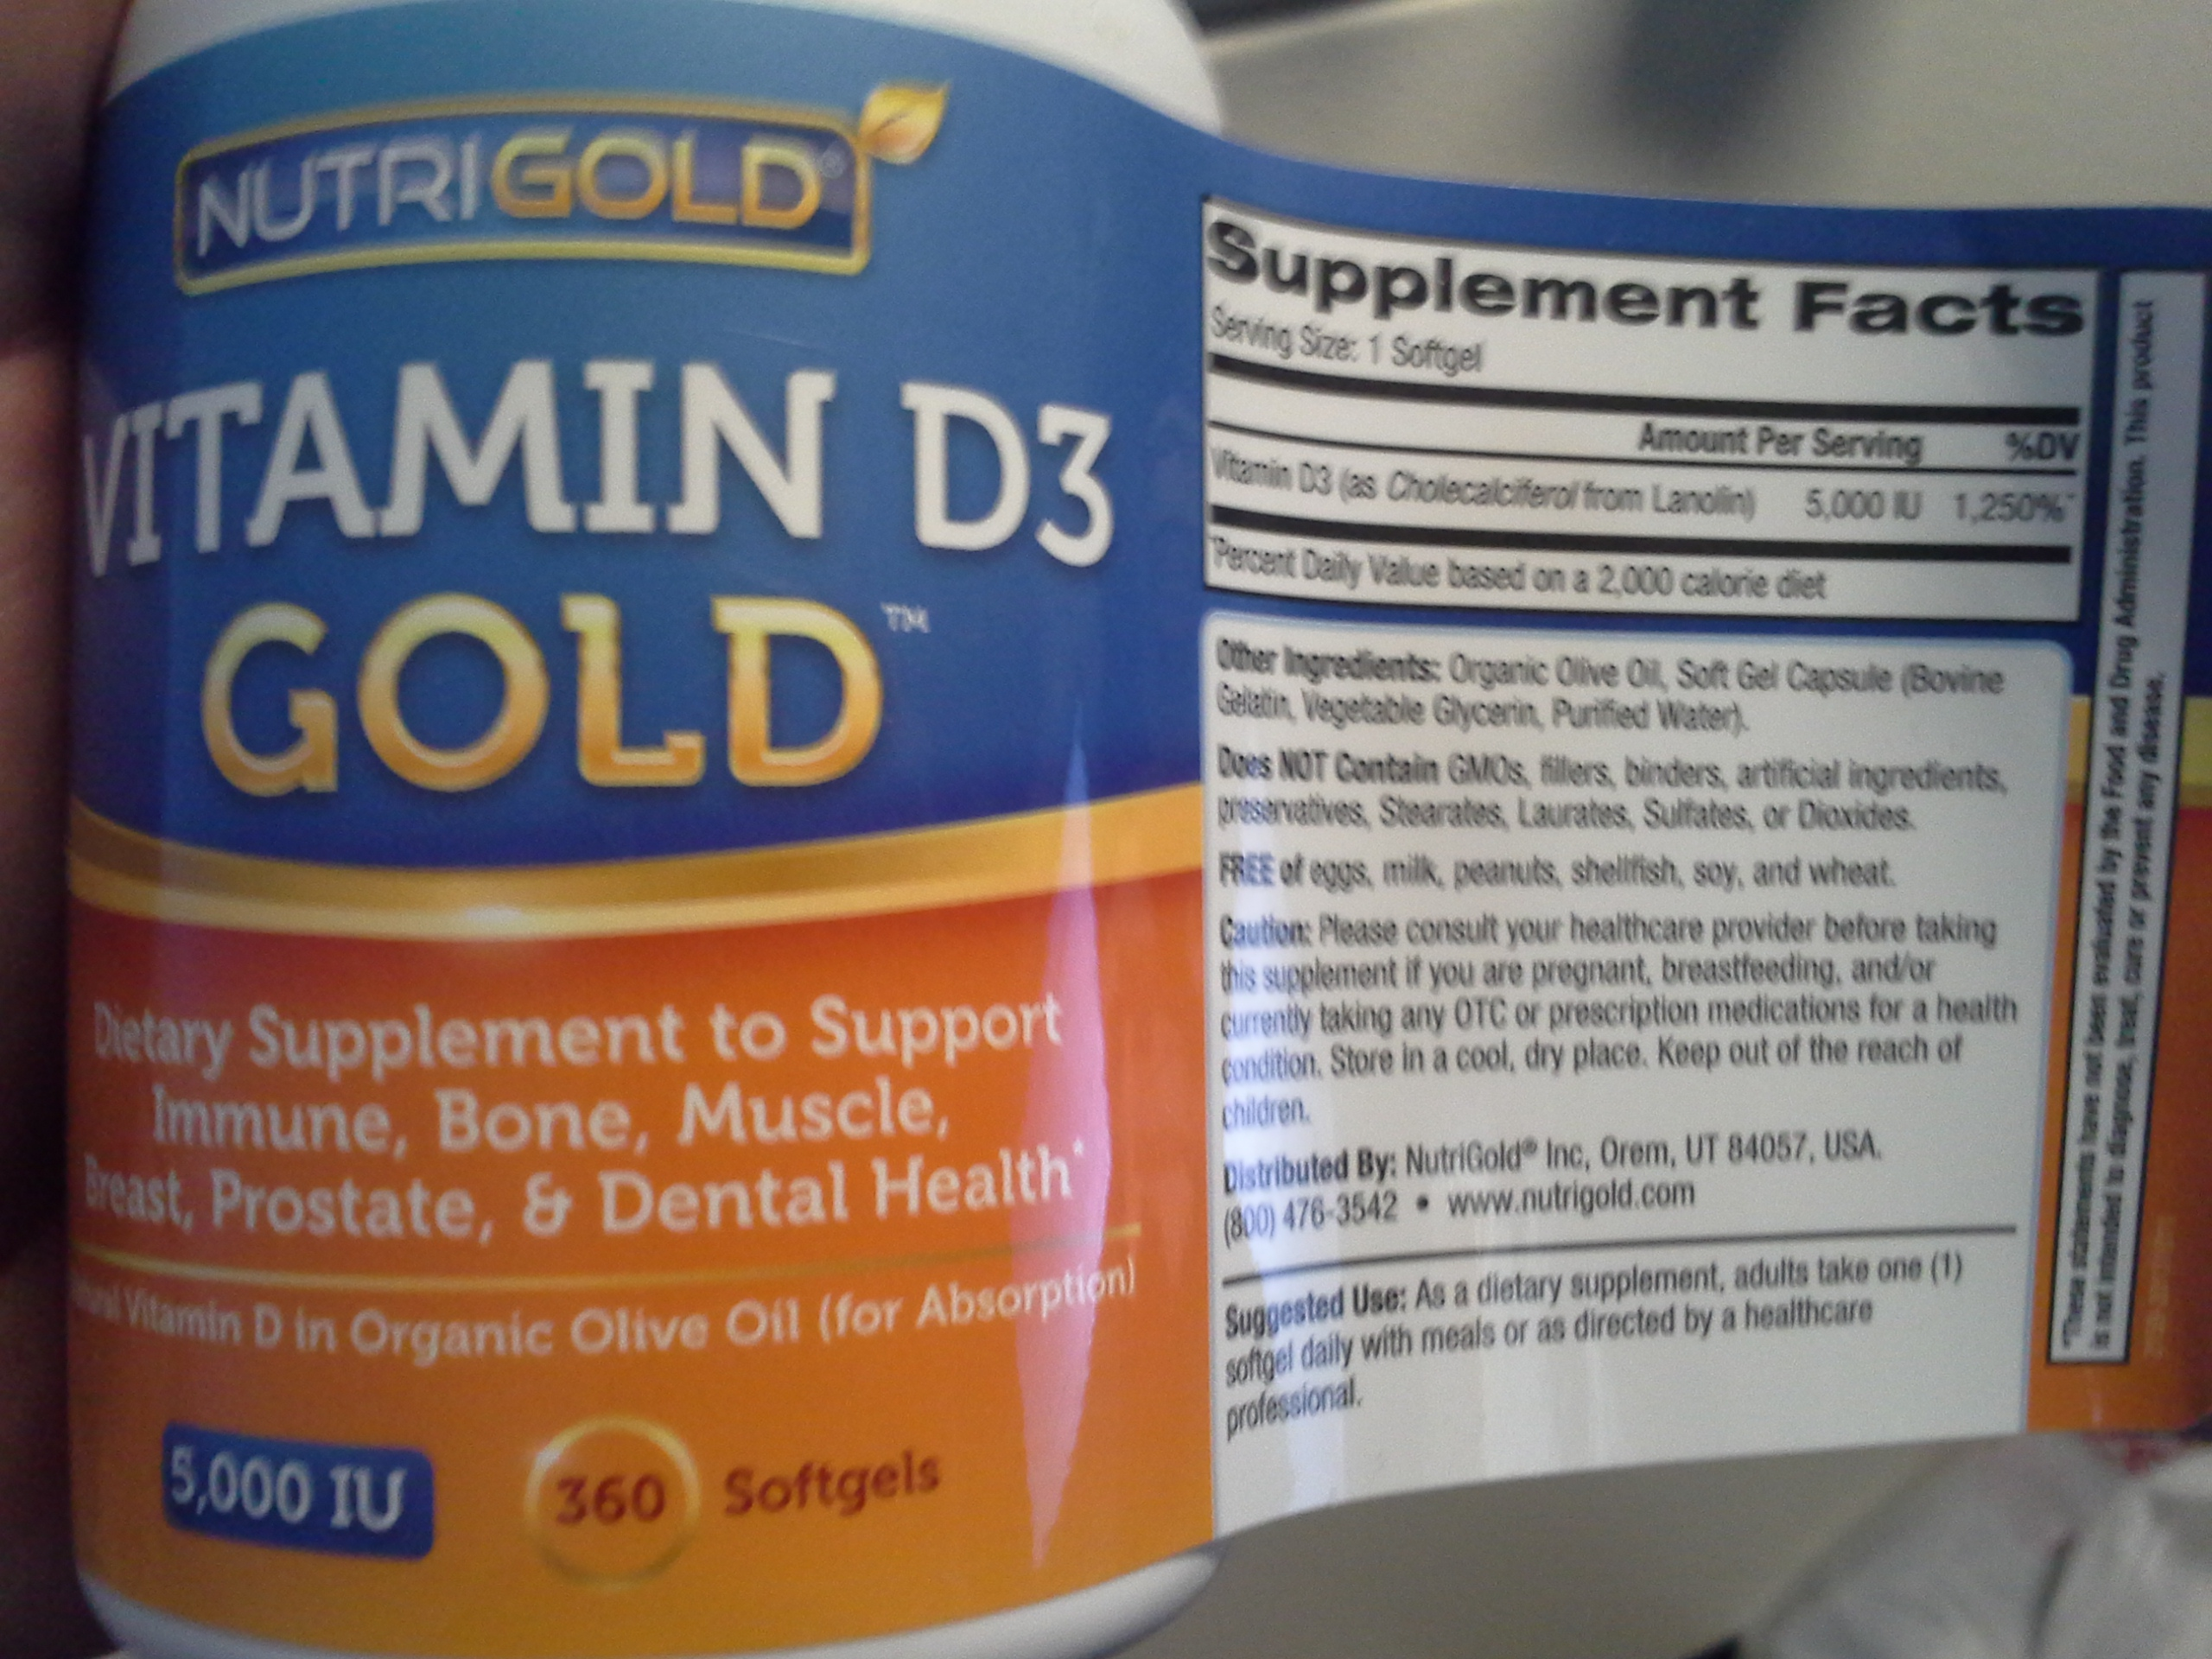 Lunch: 2:10 p.m. | 5,000 IU Vitamin D3 capsule